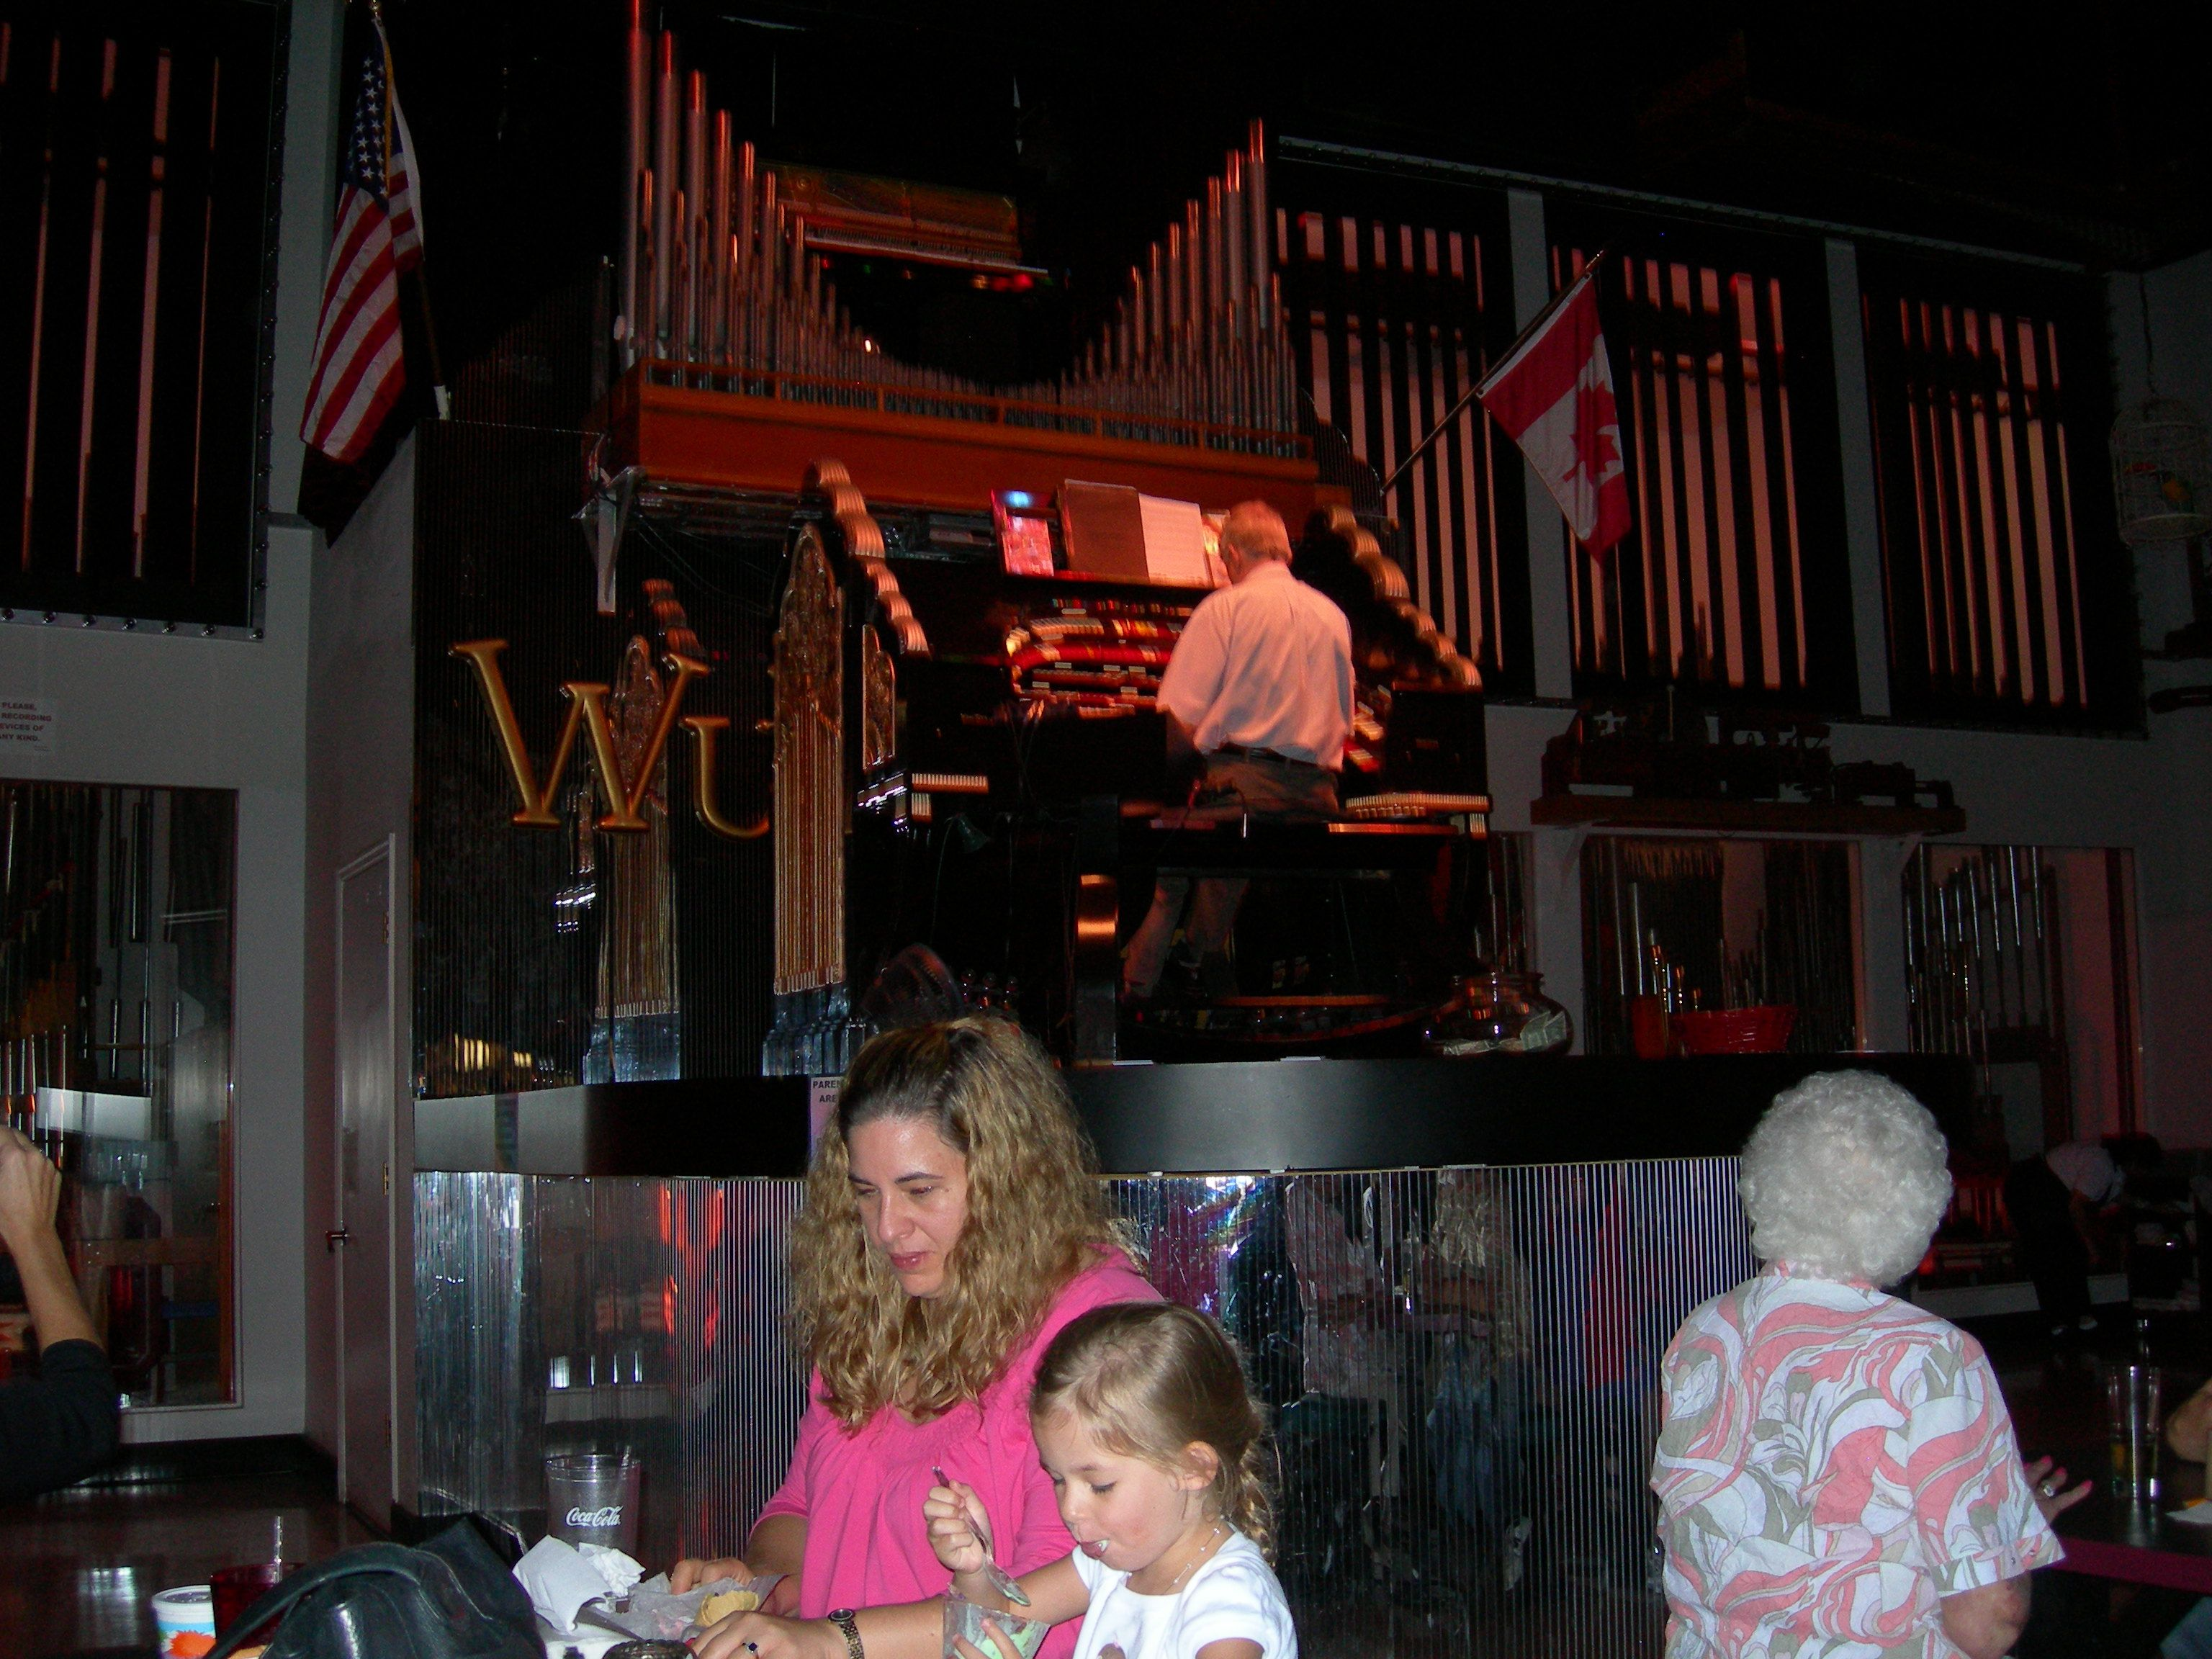 The Mighty Wurlitzer Organ at Pizza and Pipes in Ellenton